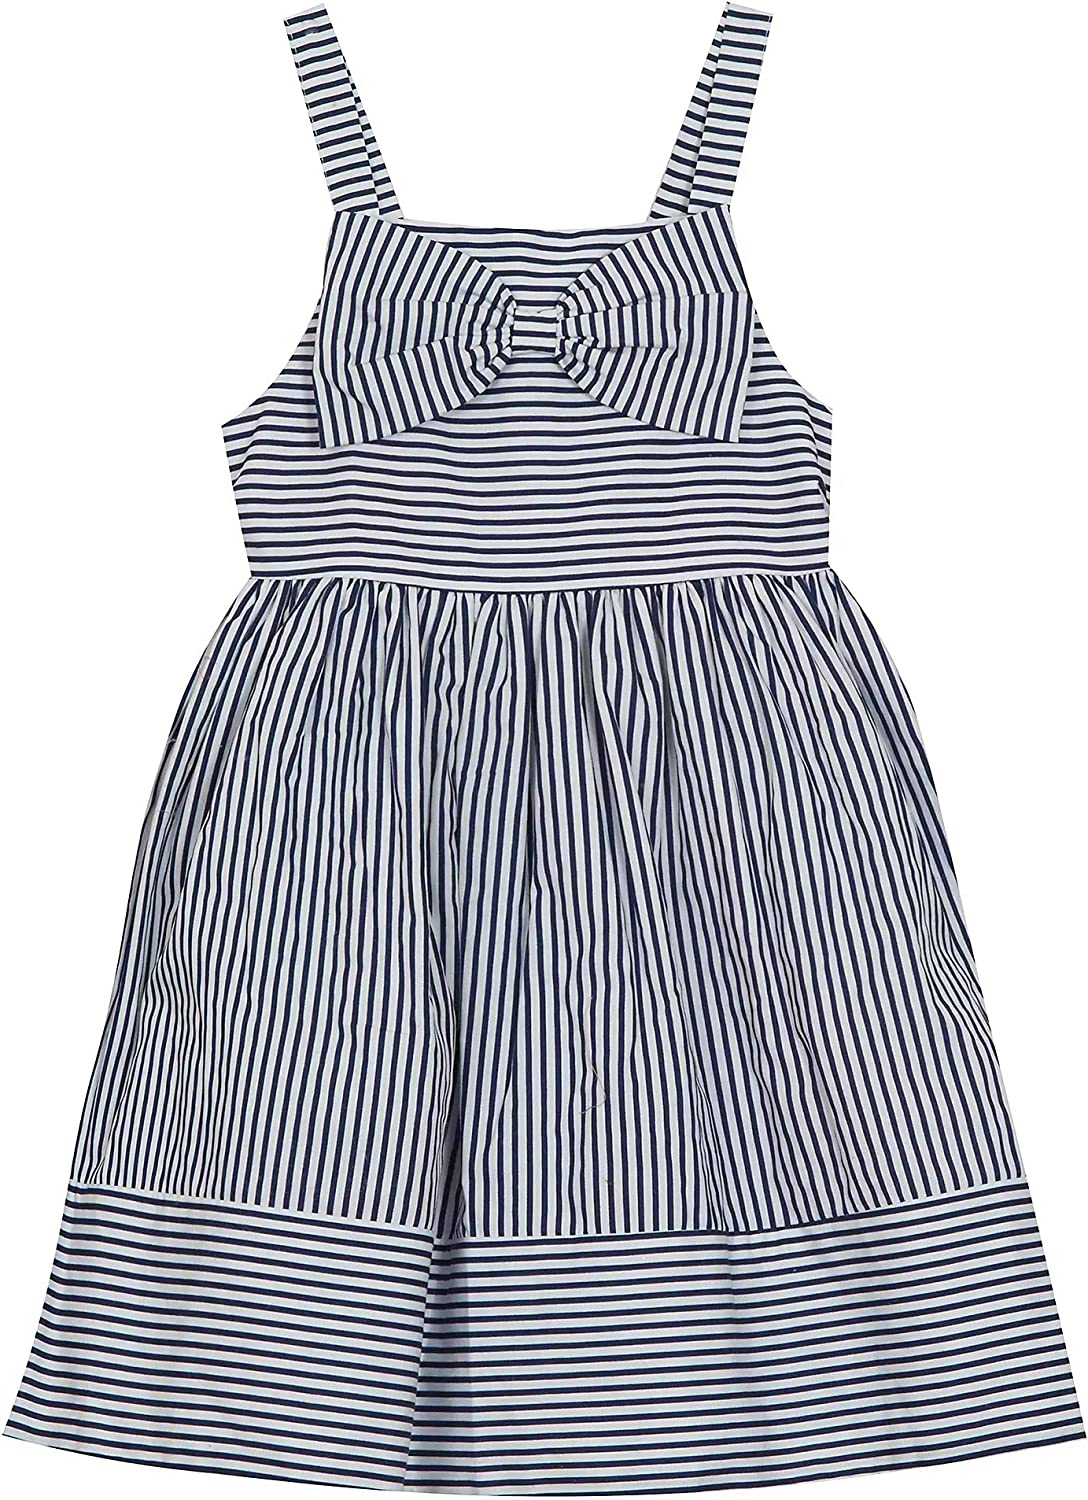 Rare Editions Toddler Girl Navy Pinstriped Sundress (2t-4t)